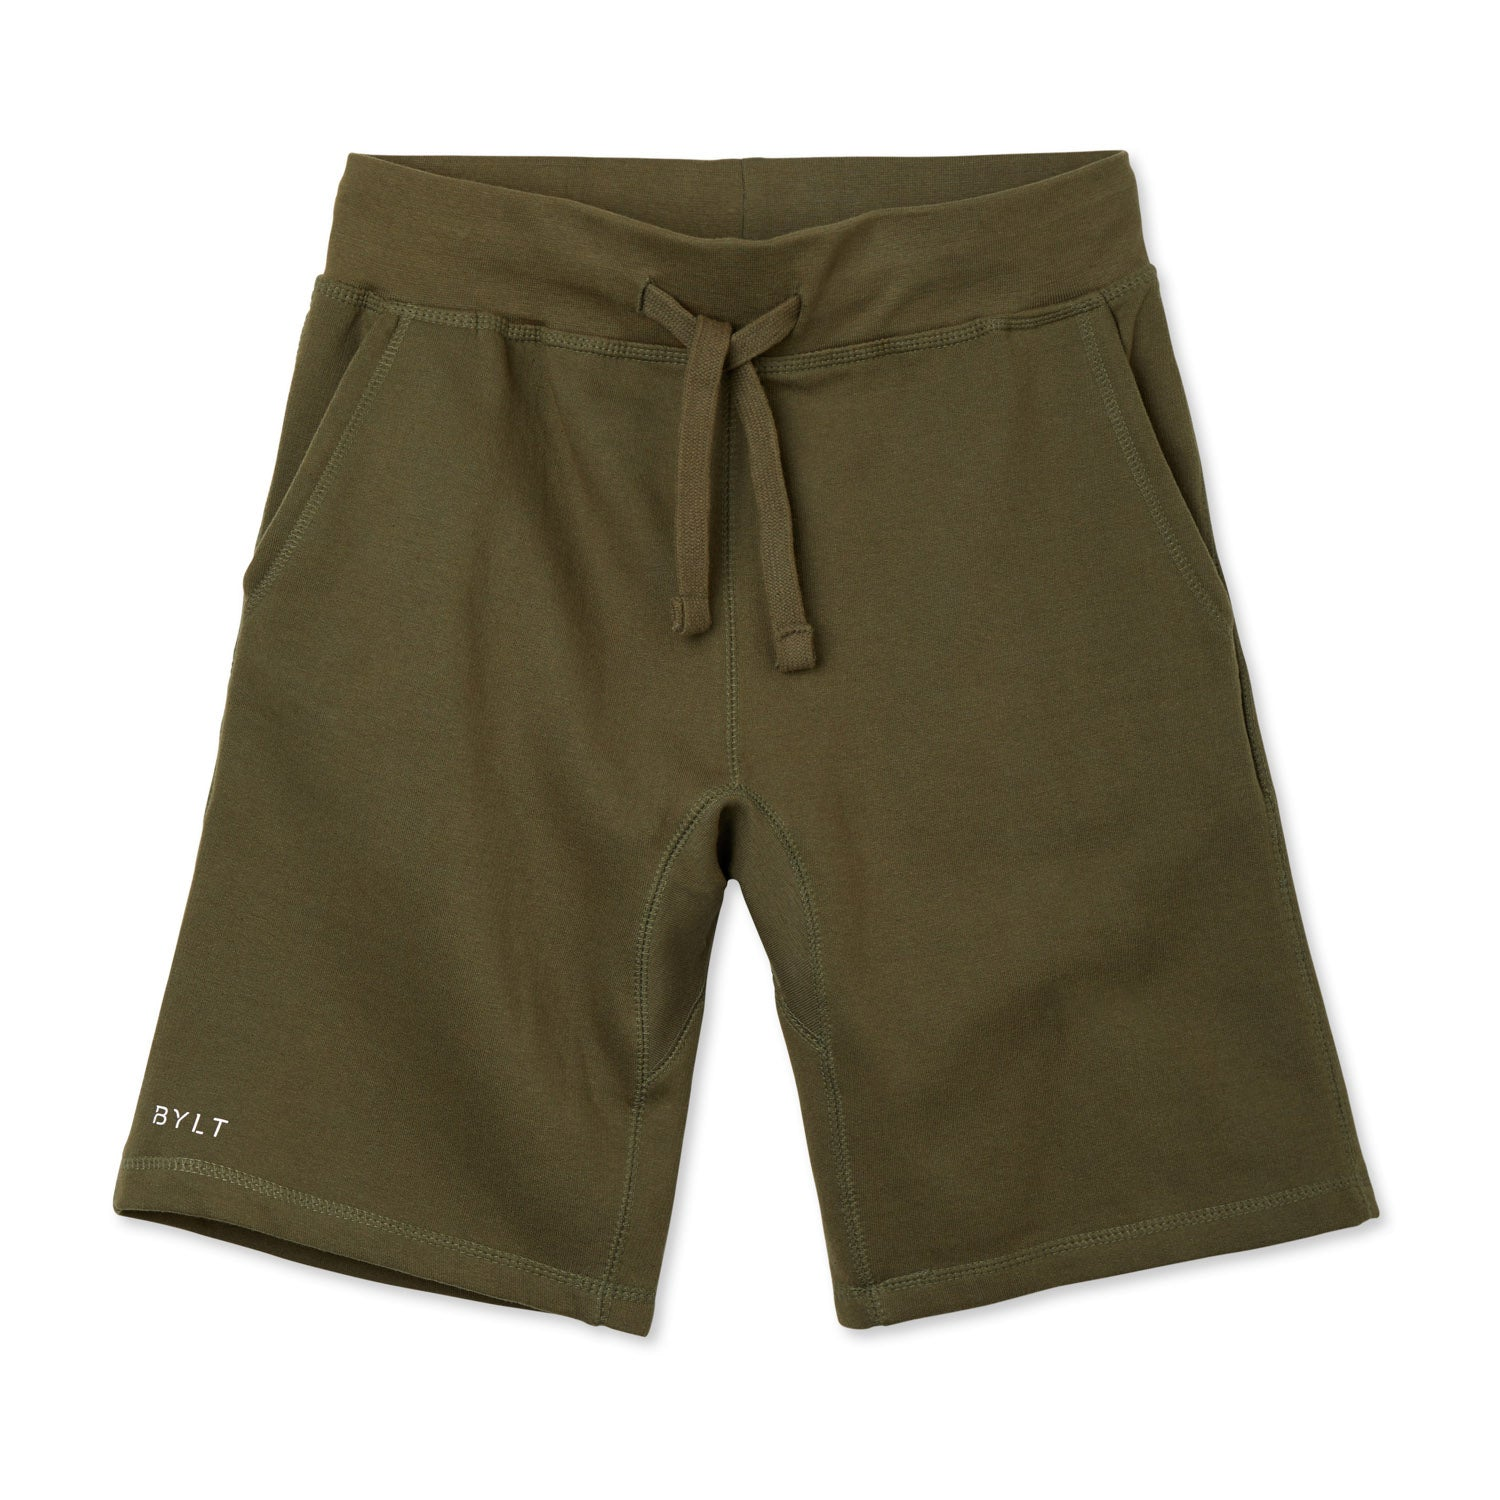 BYLT (BUILT) APPAREL BASICS JOGGER SHORT MILITARY GREEN.